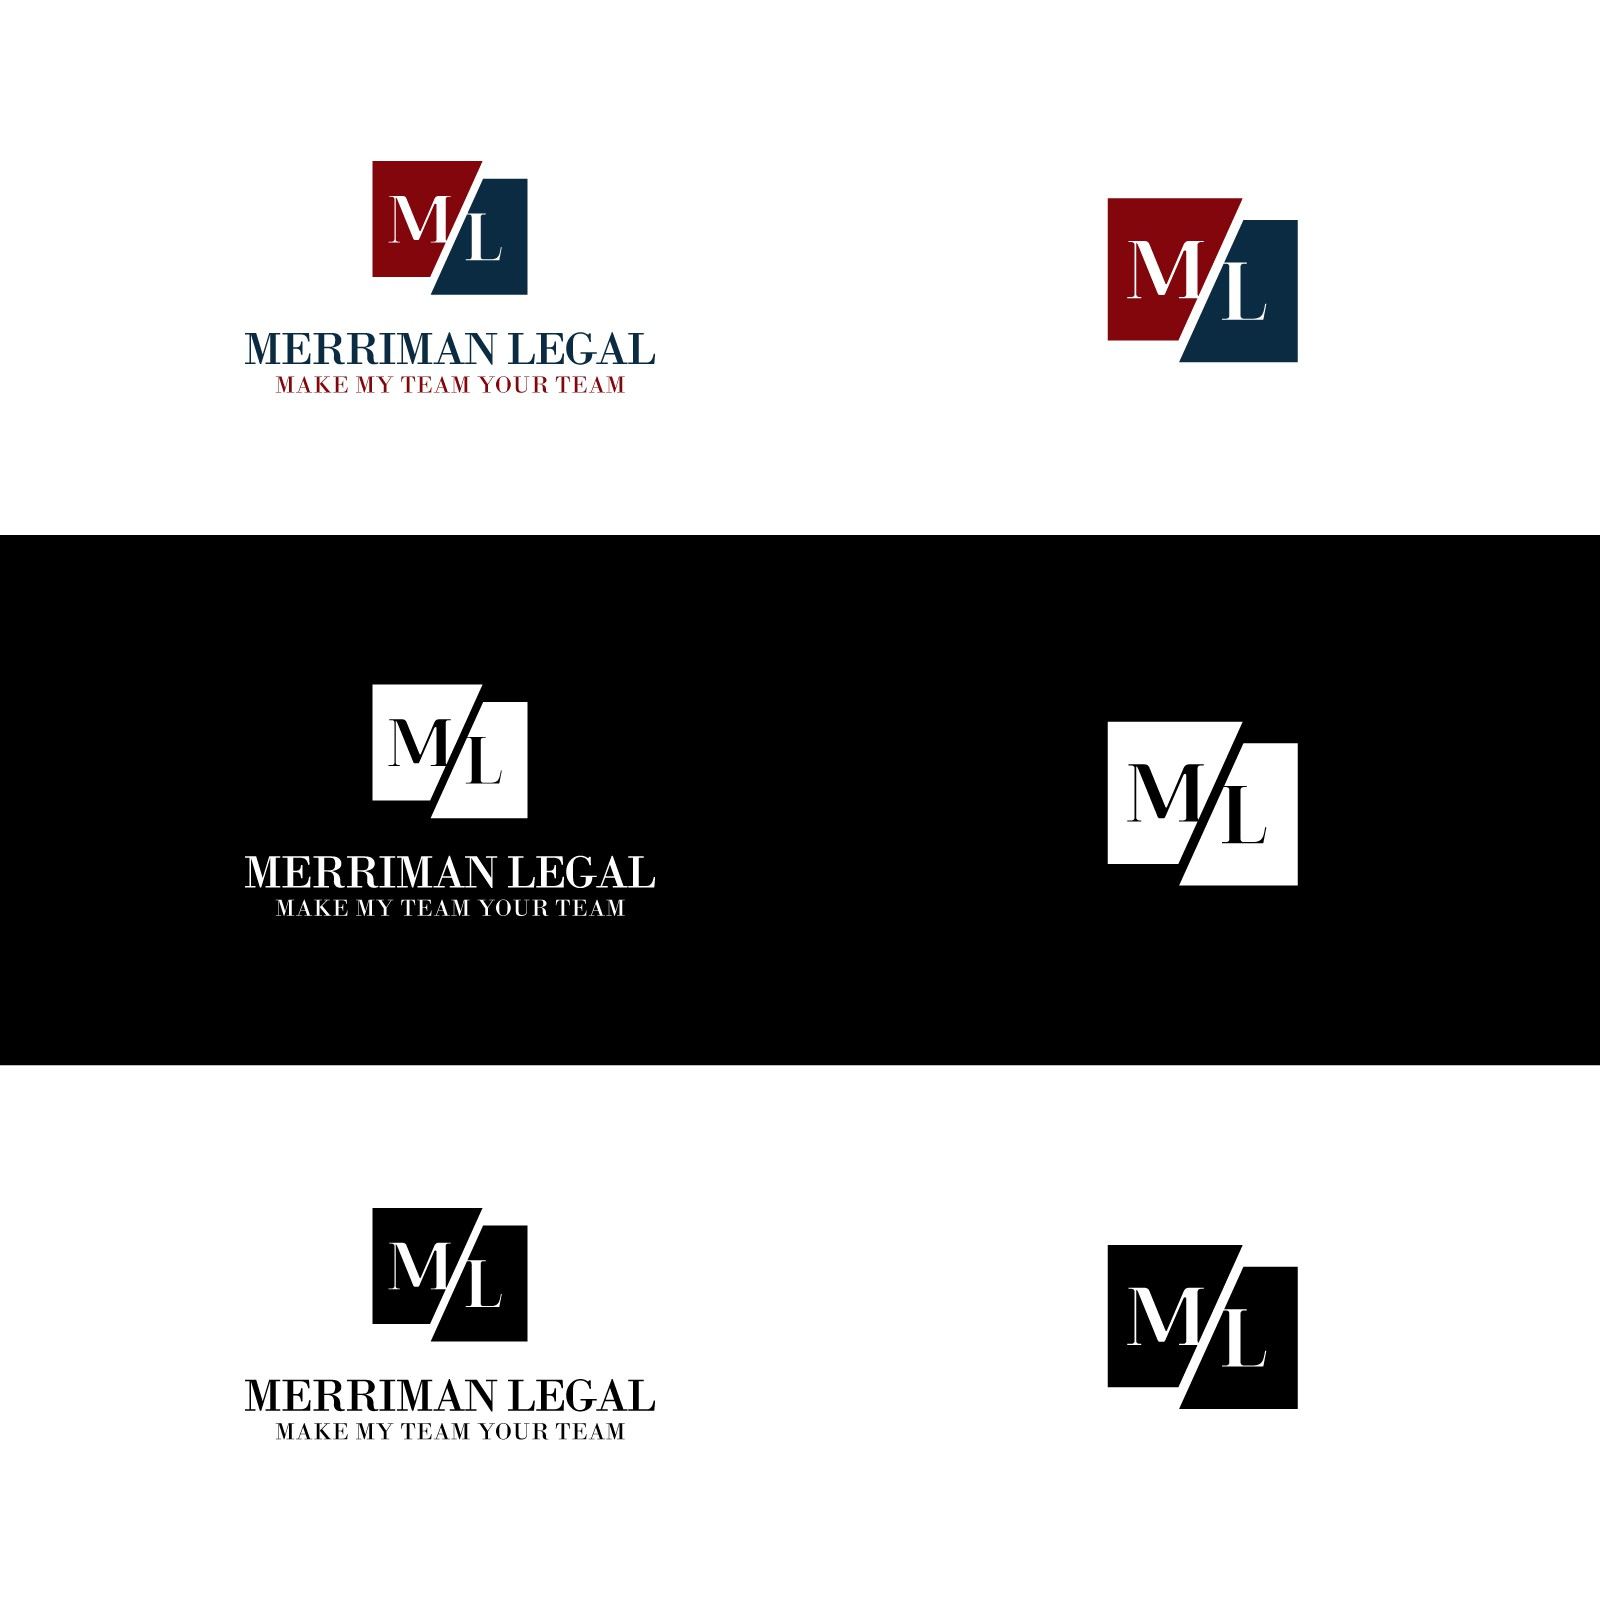 Stodgy Law Firm Logos Are Dead!